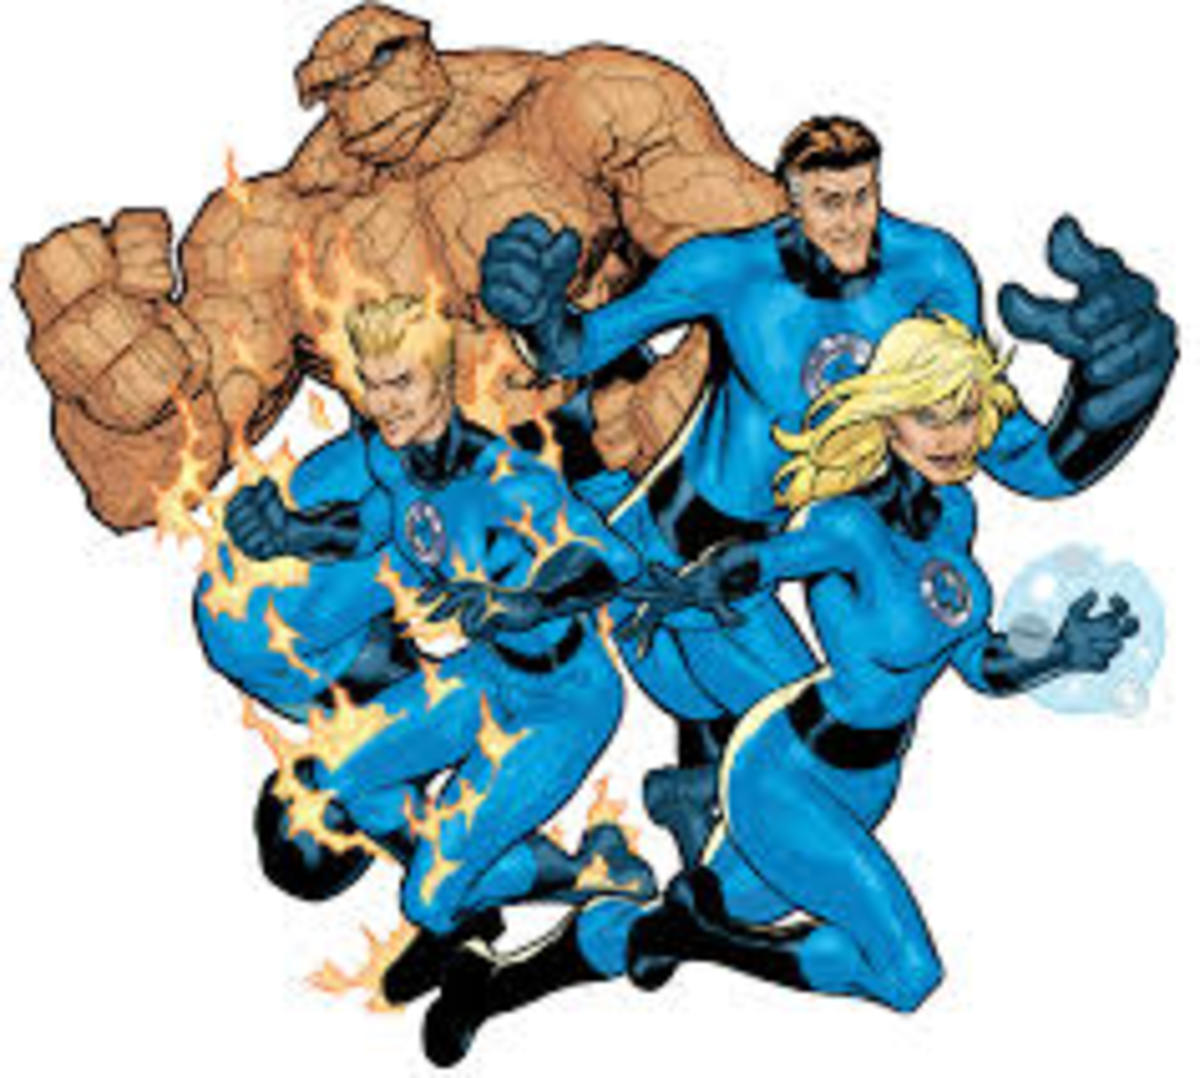 The Fantastic Four - the Key Issues